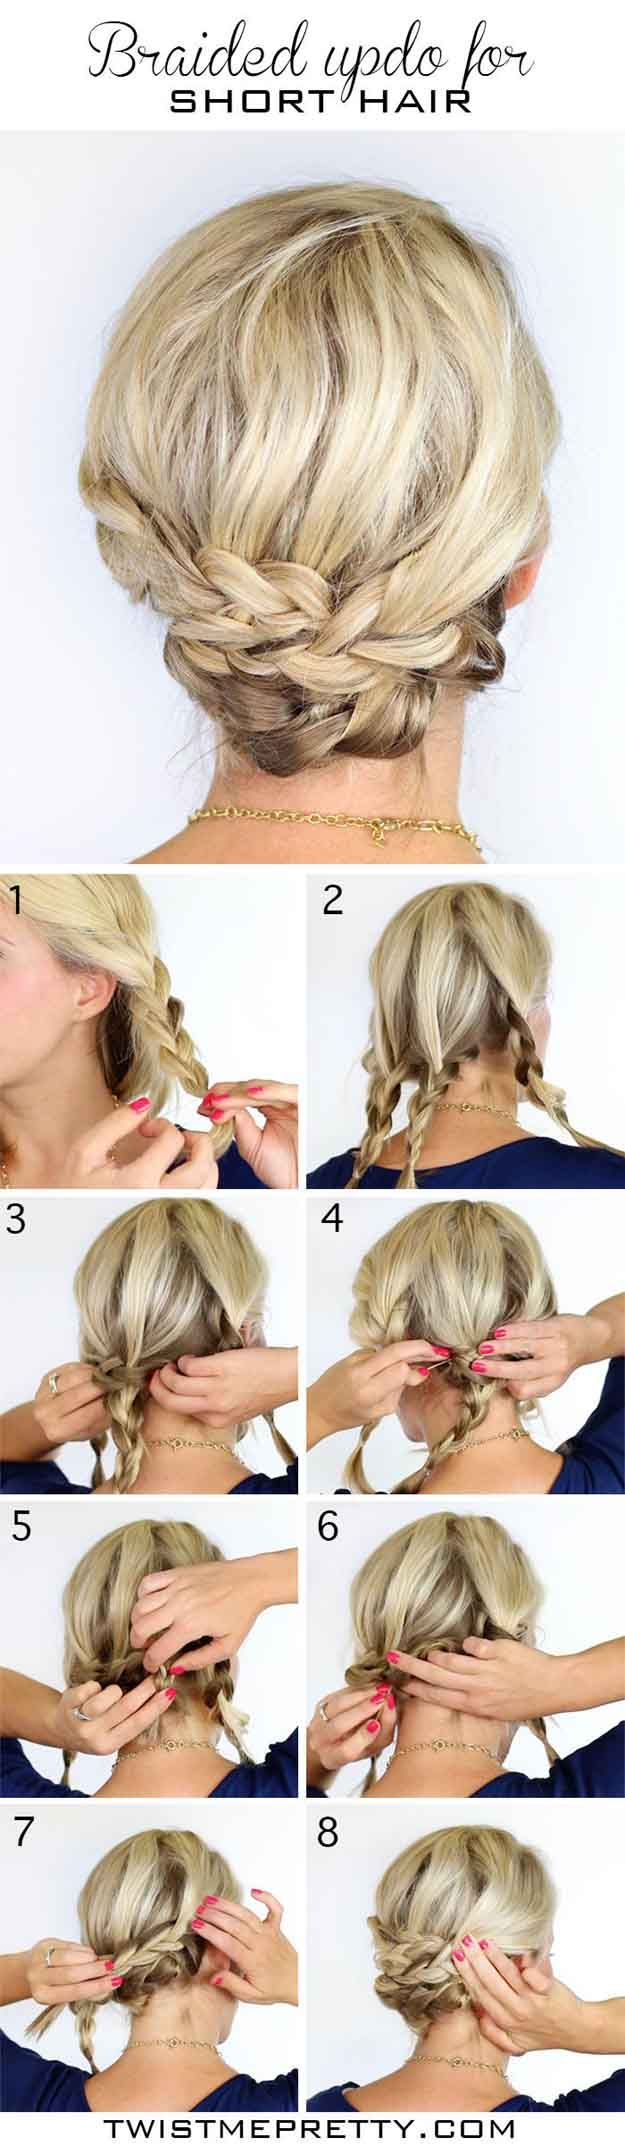 How to Do The Braided Updo